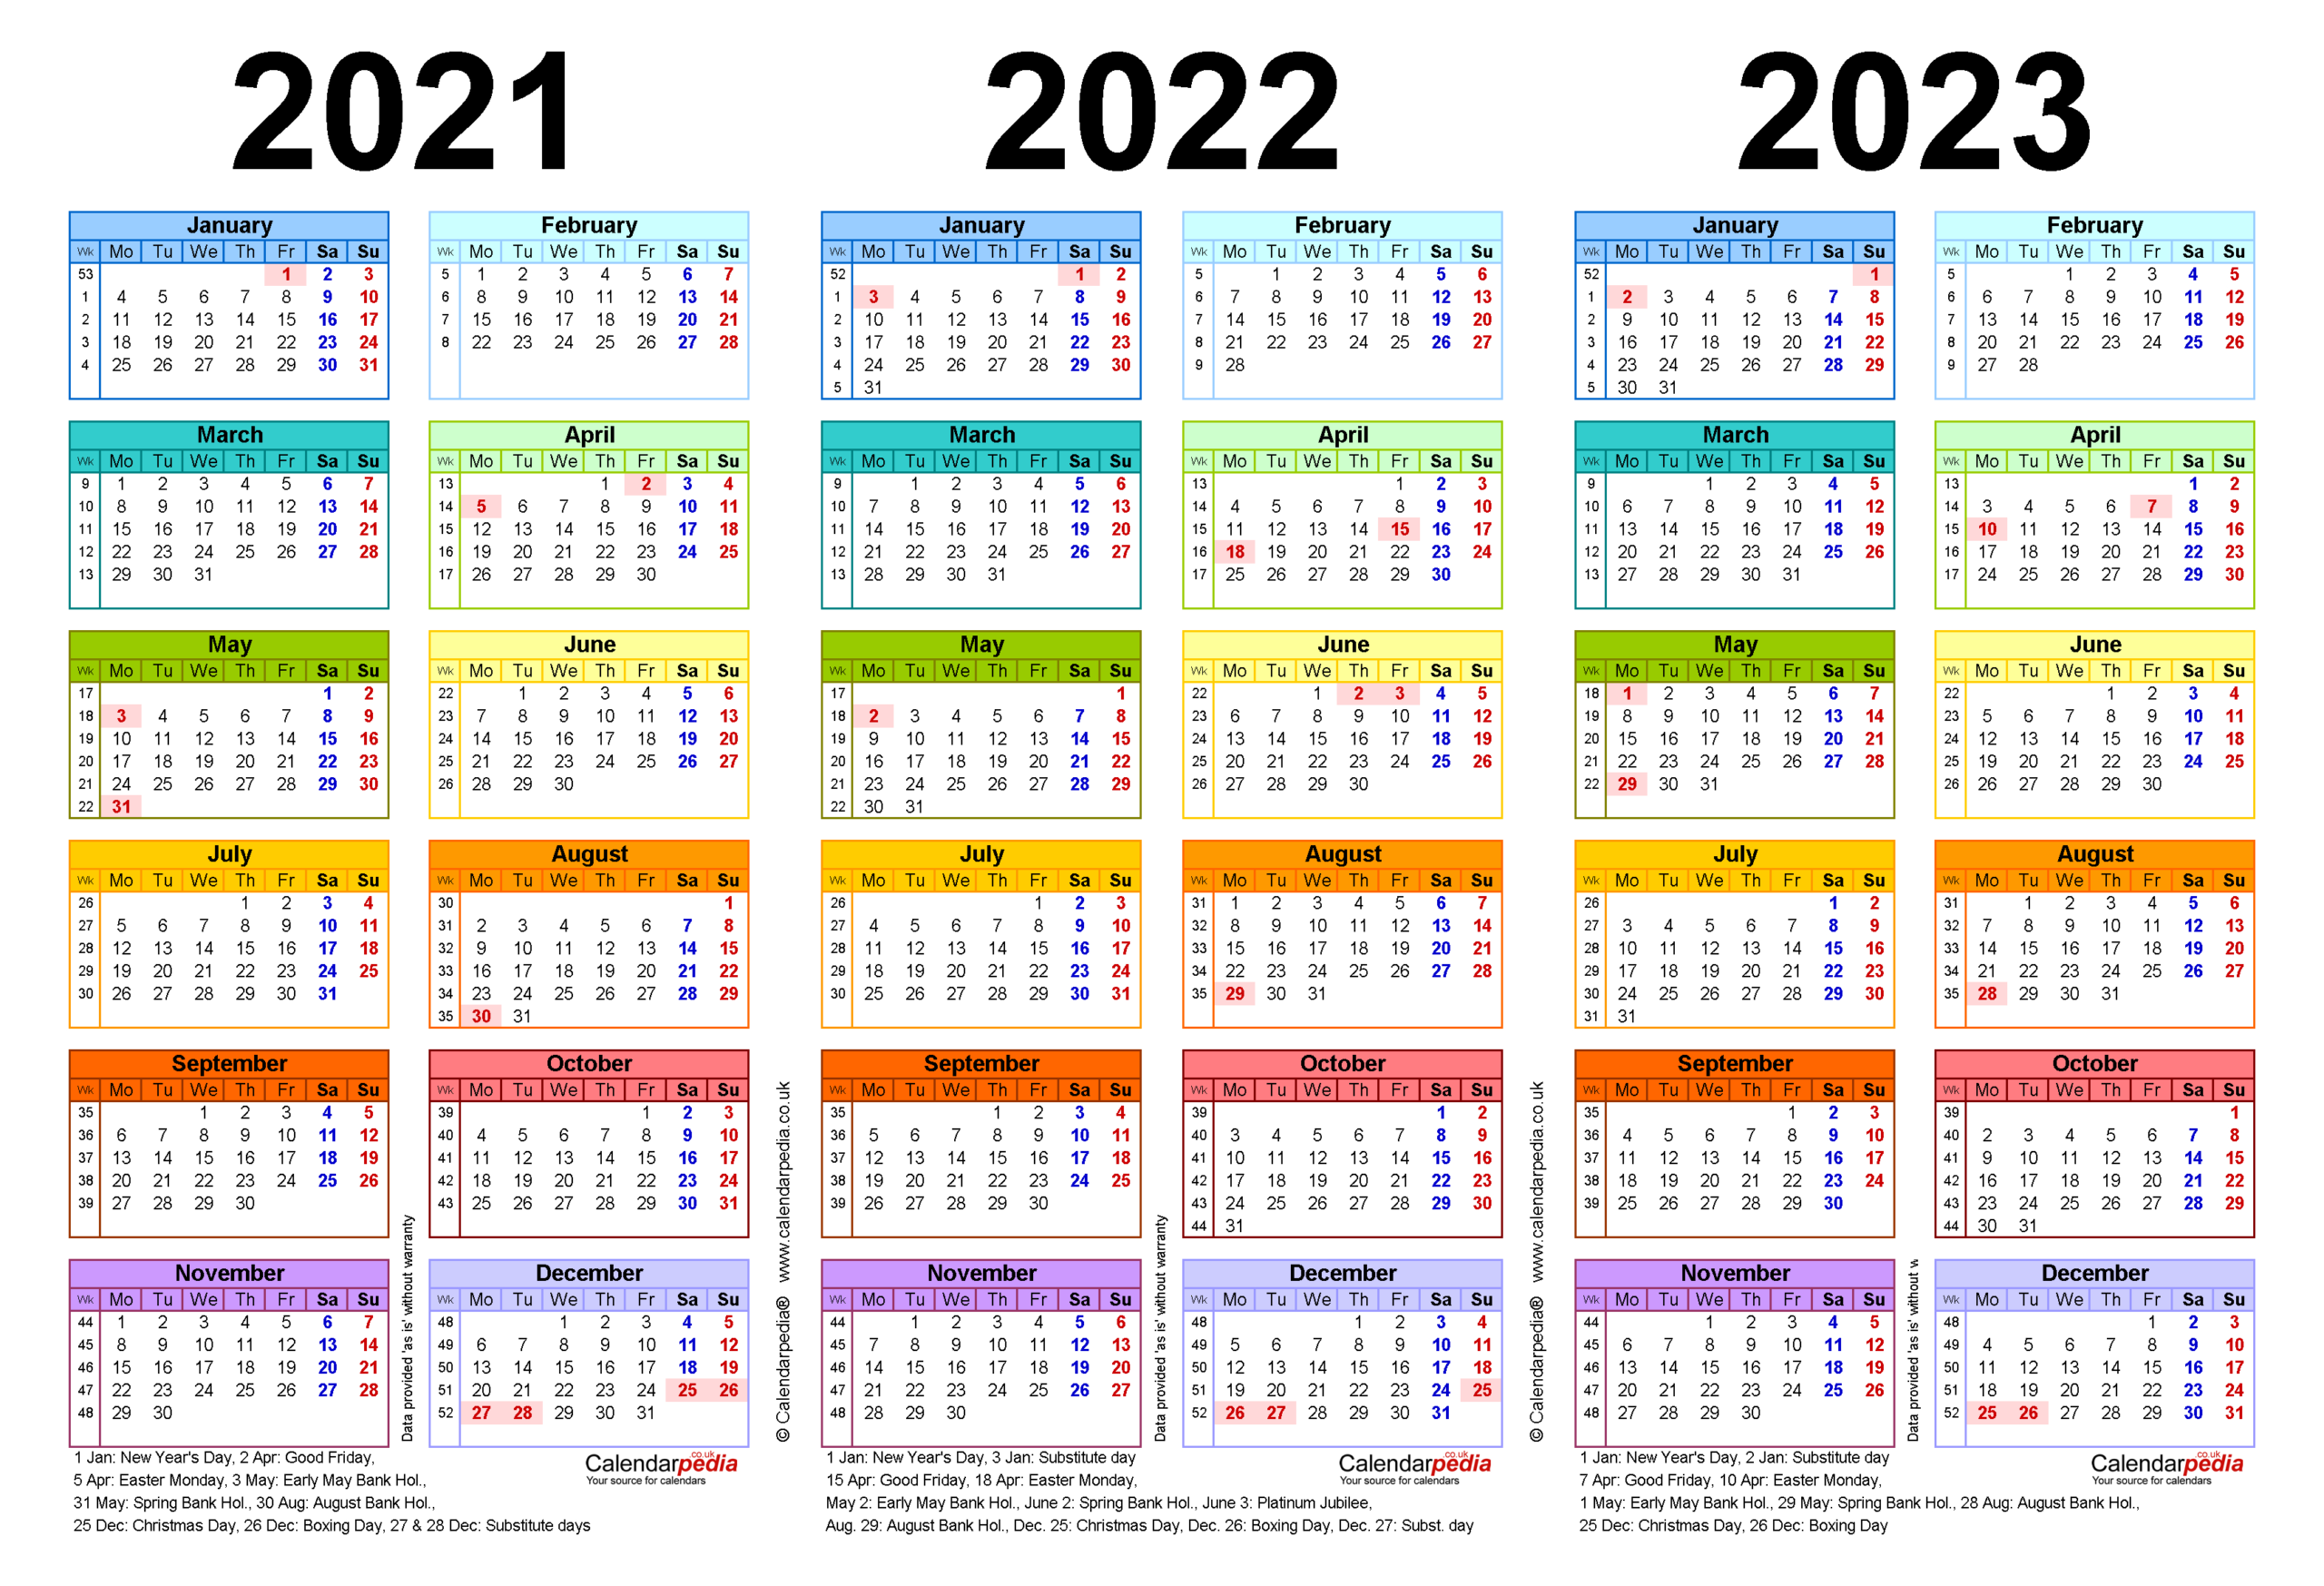 Three Year Calendars For 2021, 2022 & 2023 (Uk) For Pdf